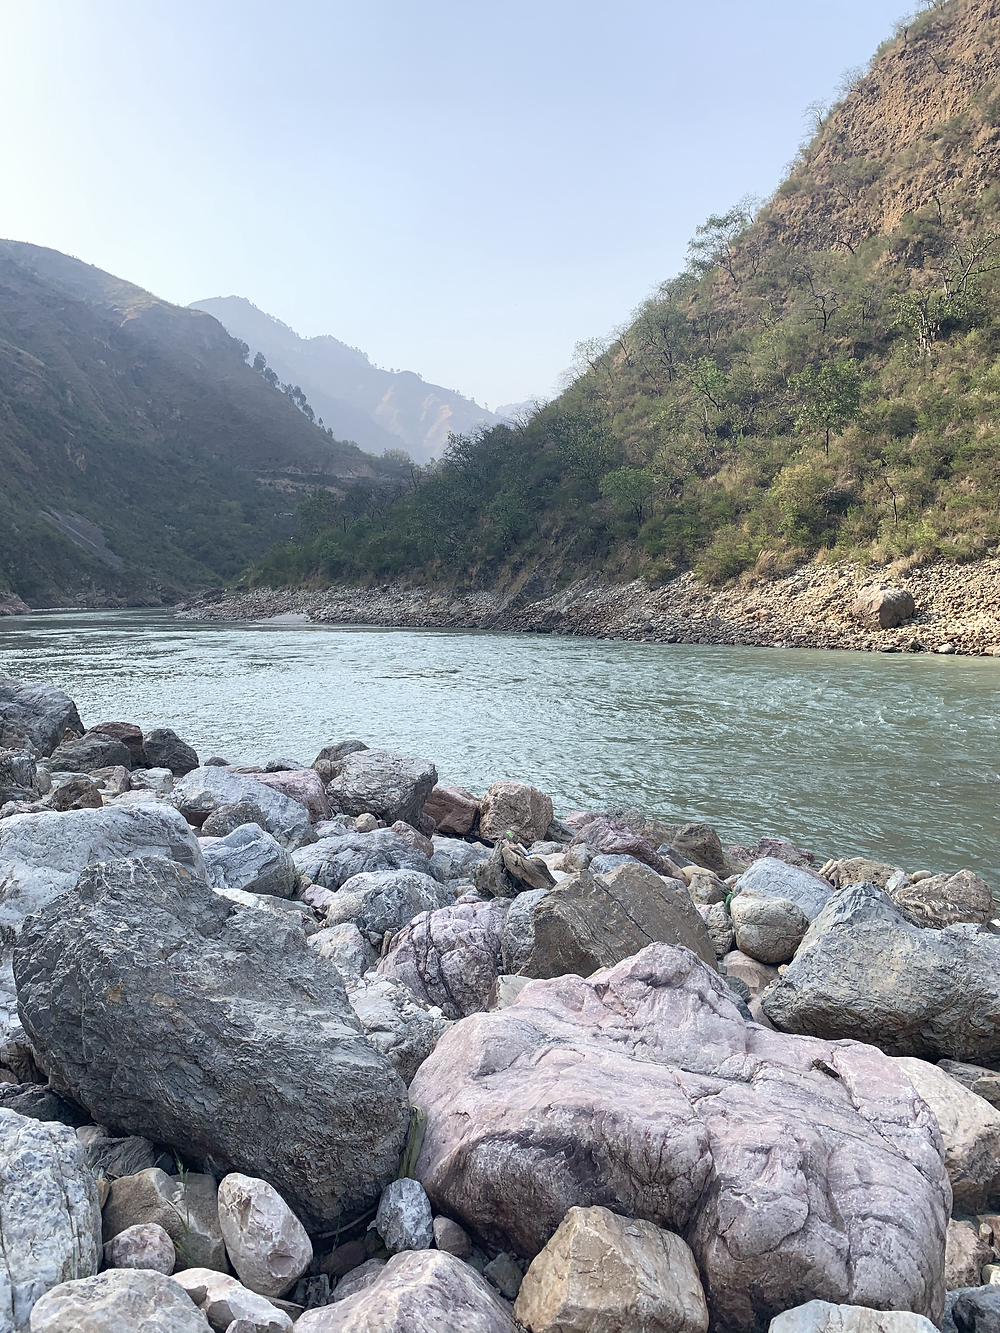 The icy cold Satluj at the starting point of rafting